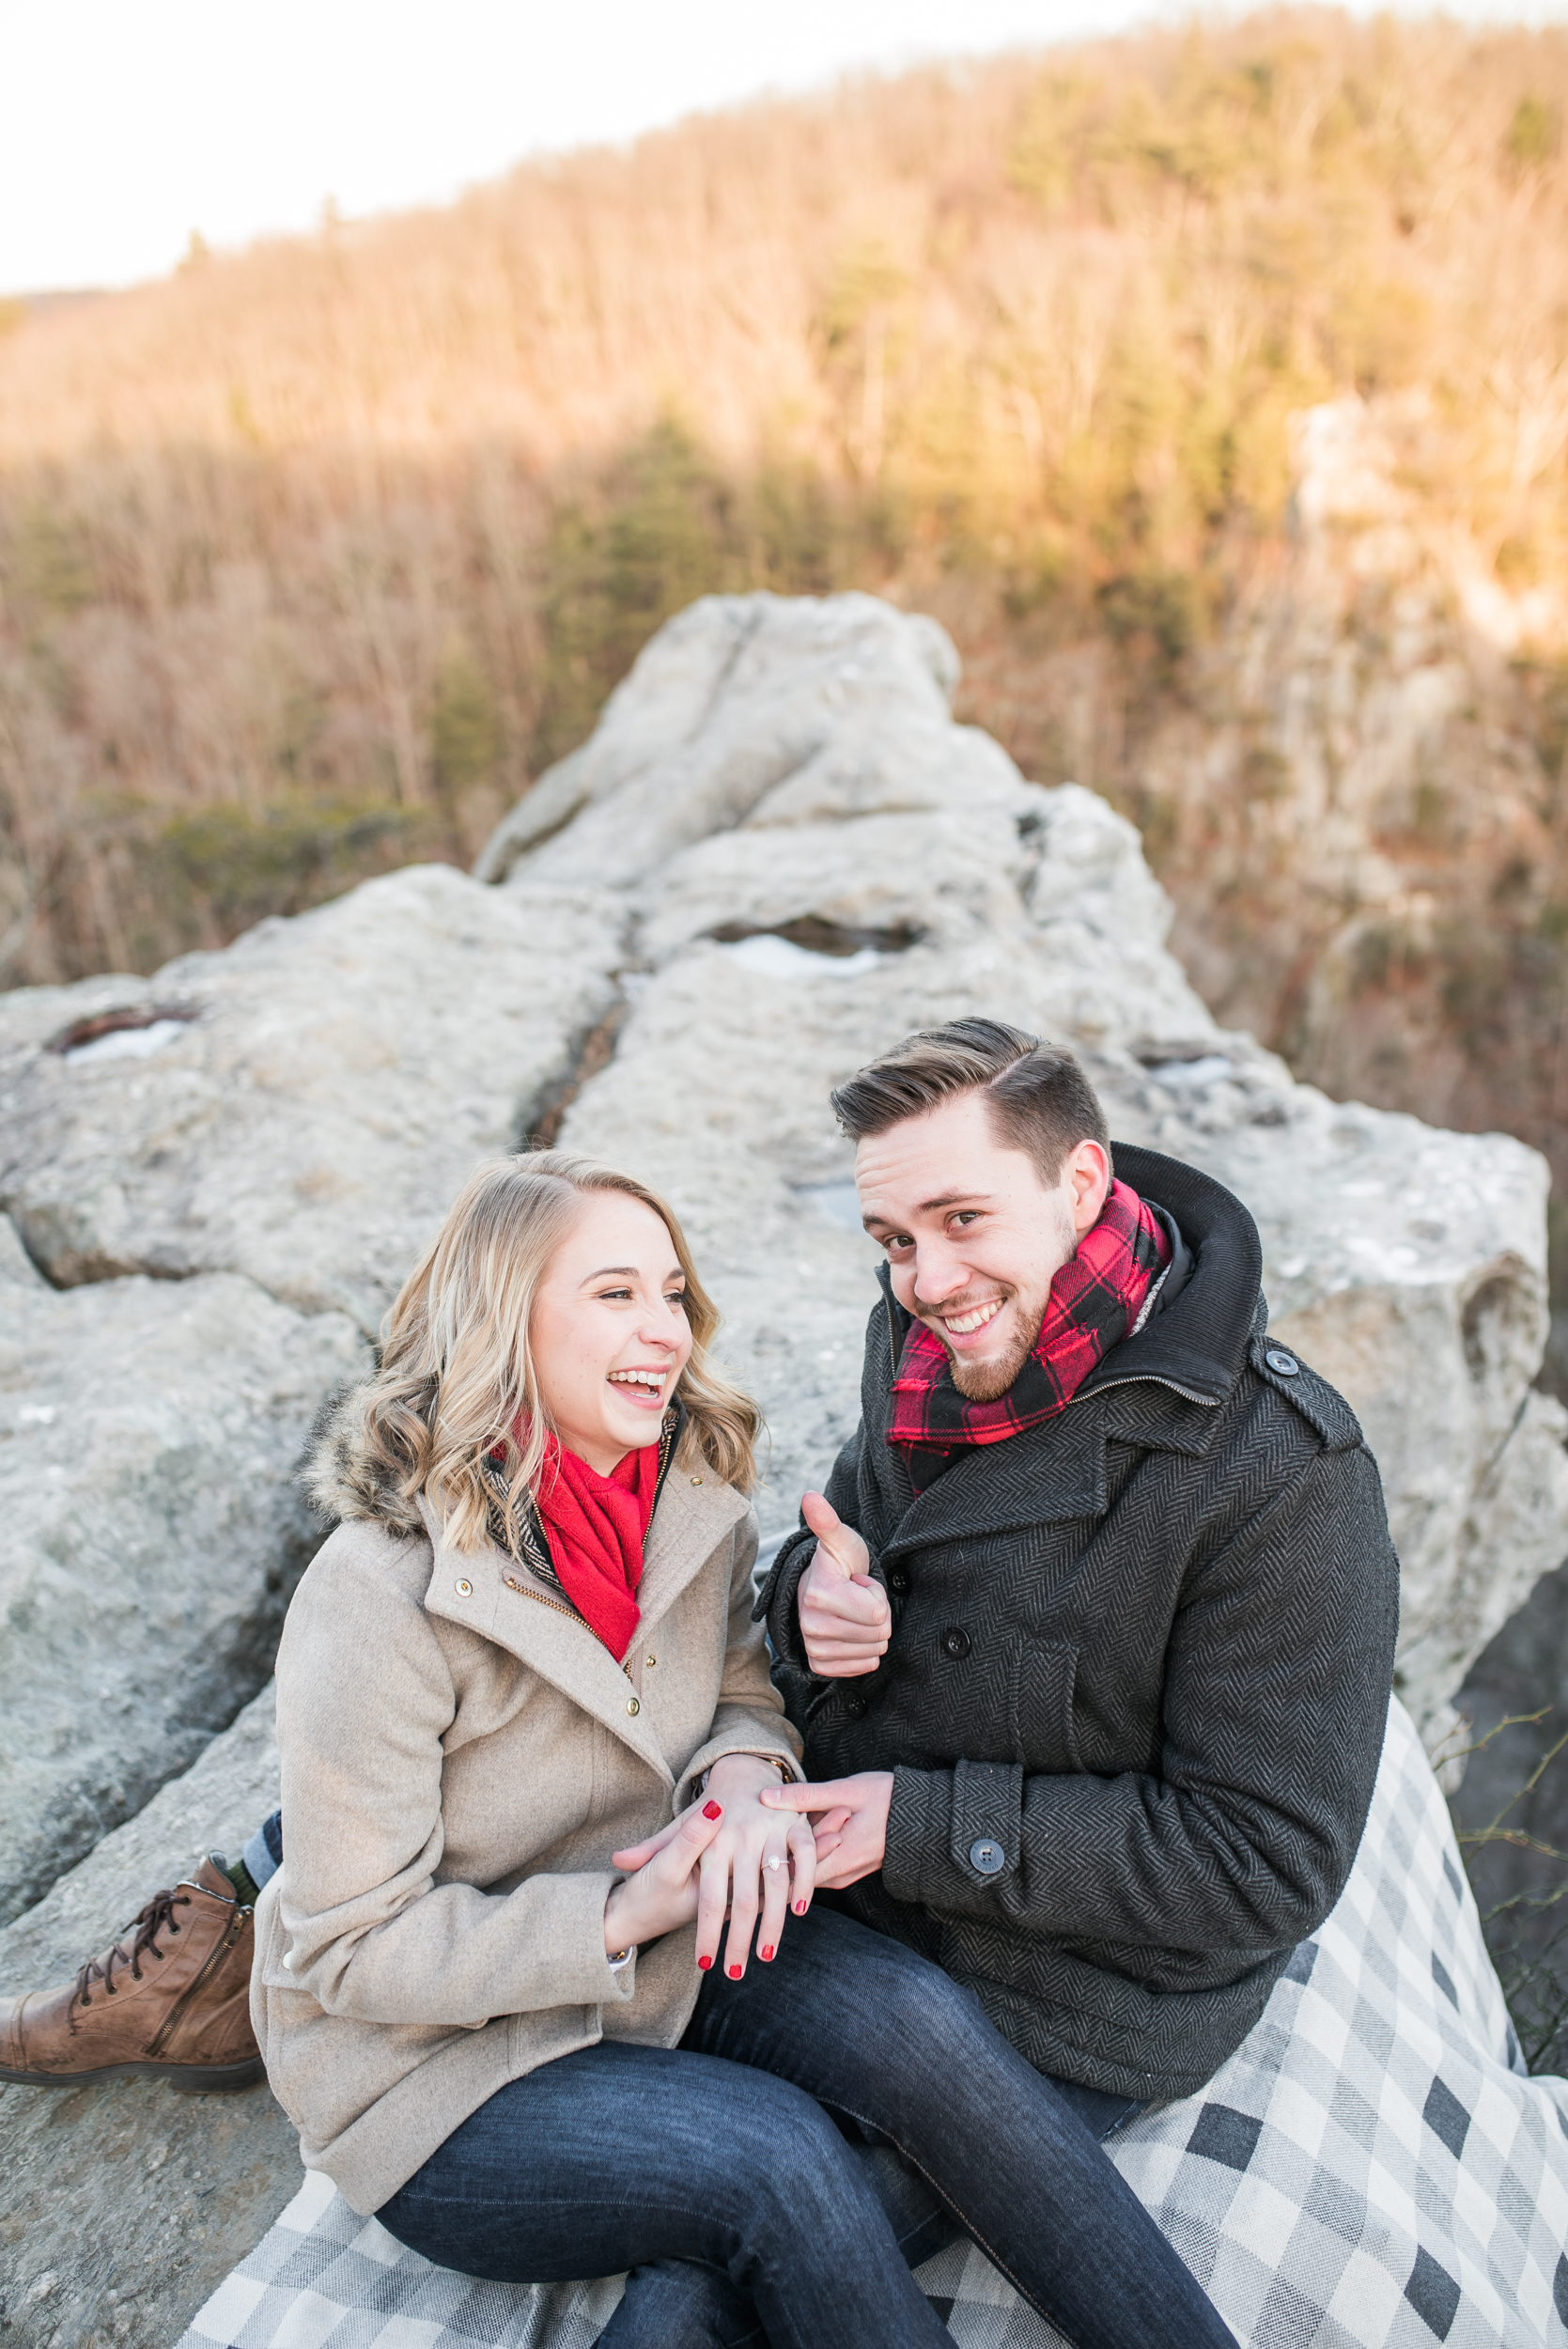 rocks-state-park-engagement-chelsea-blanch-photography-1.jpgrocks-state-park-engagement-chelsea-blanch-photography-11